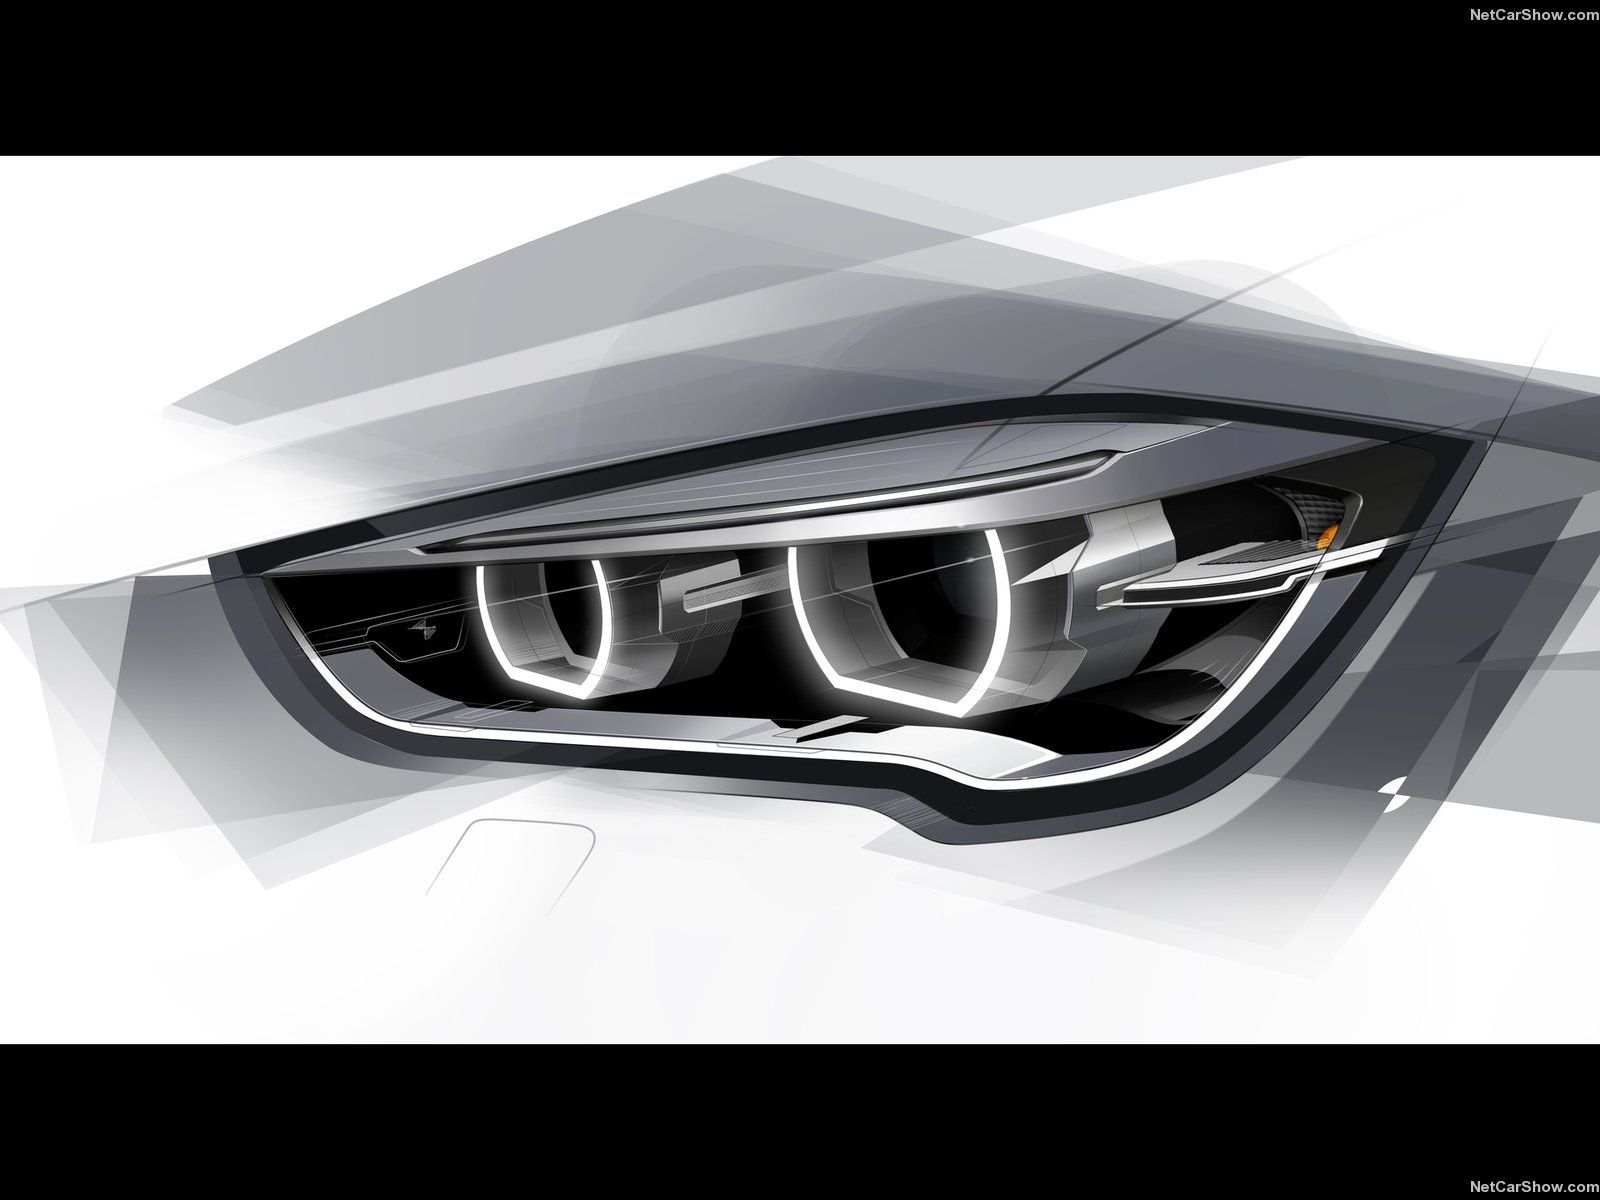 bmw x1 2016 headlamp lighting design sketches pinterest bmw cars and vehicle. Black Bedroom Furniture Sets. Home Design Ideas